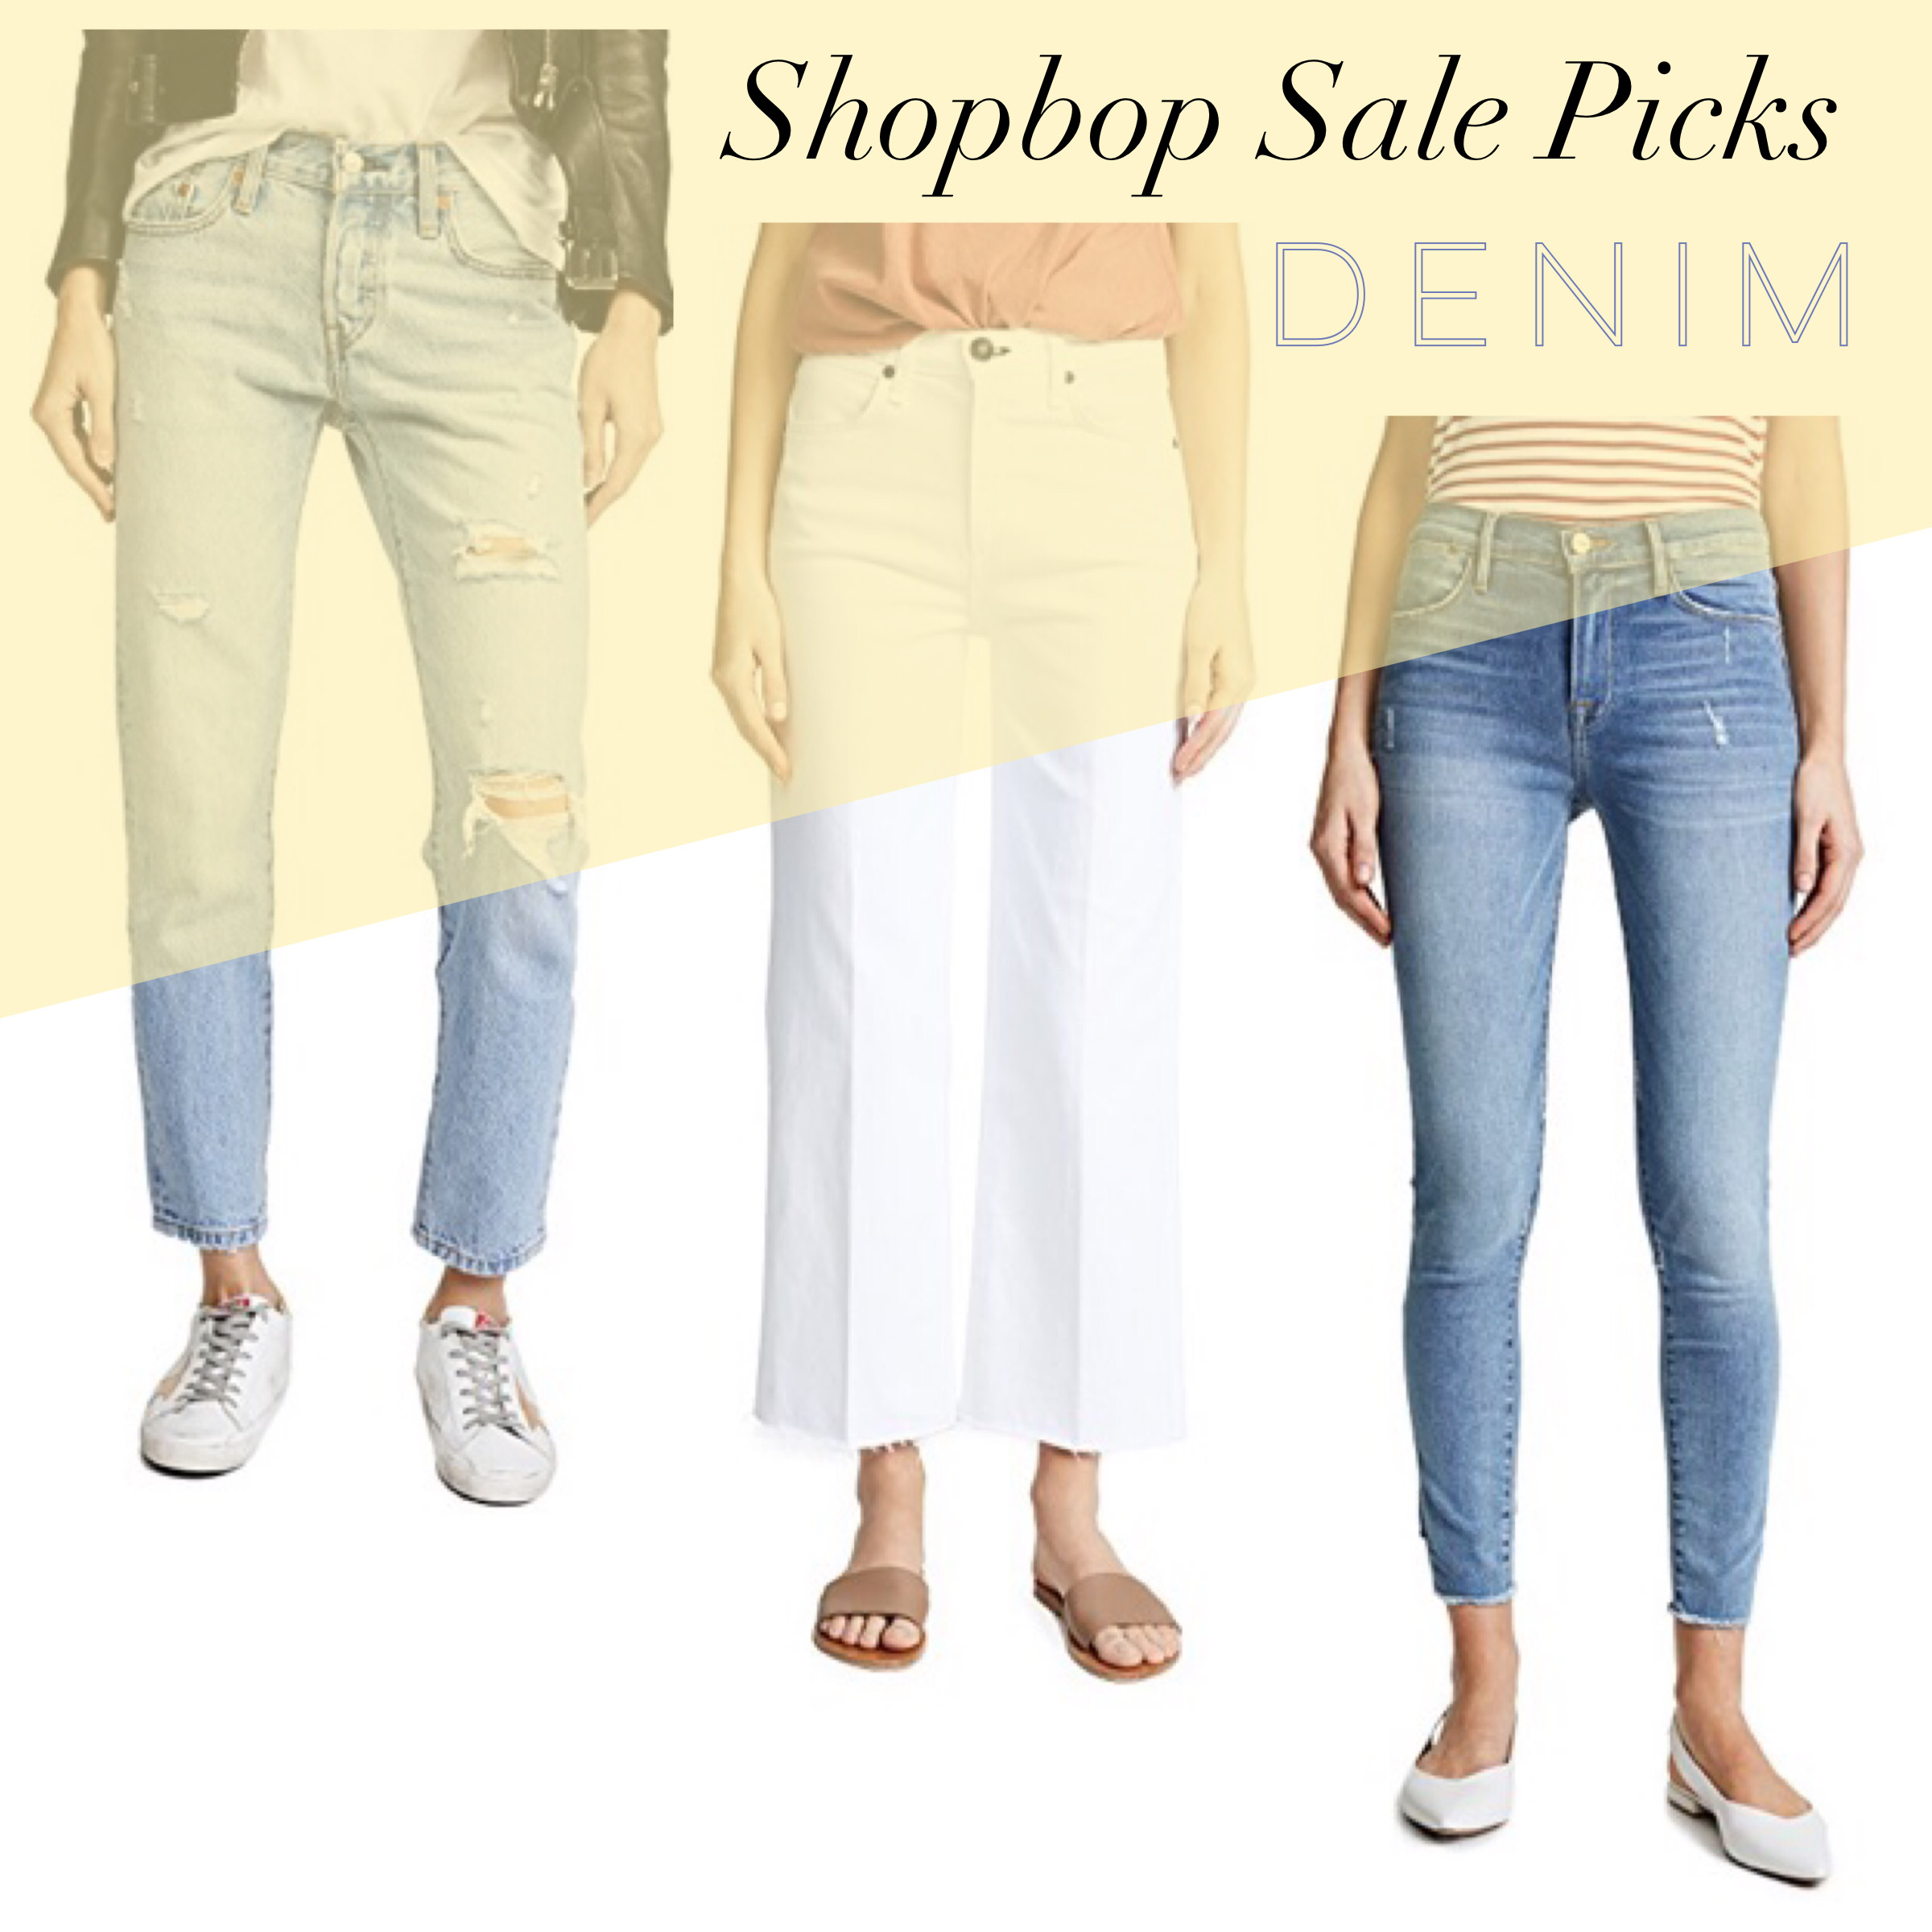 shopbop sale jeans denim